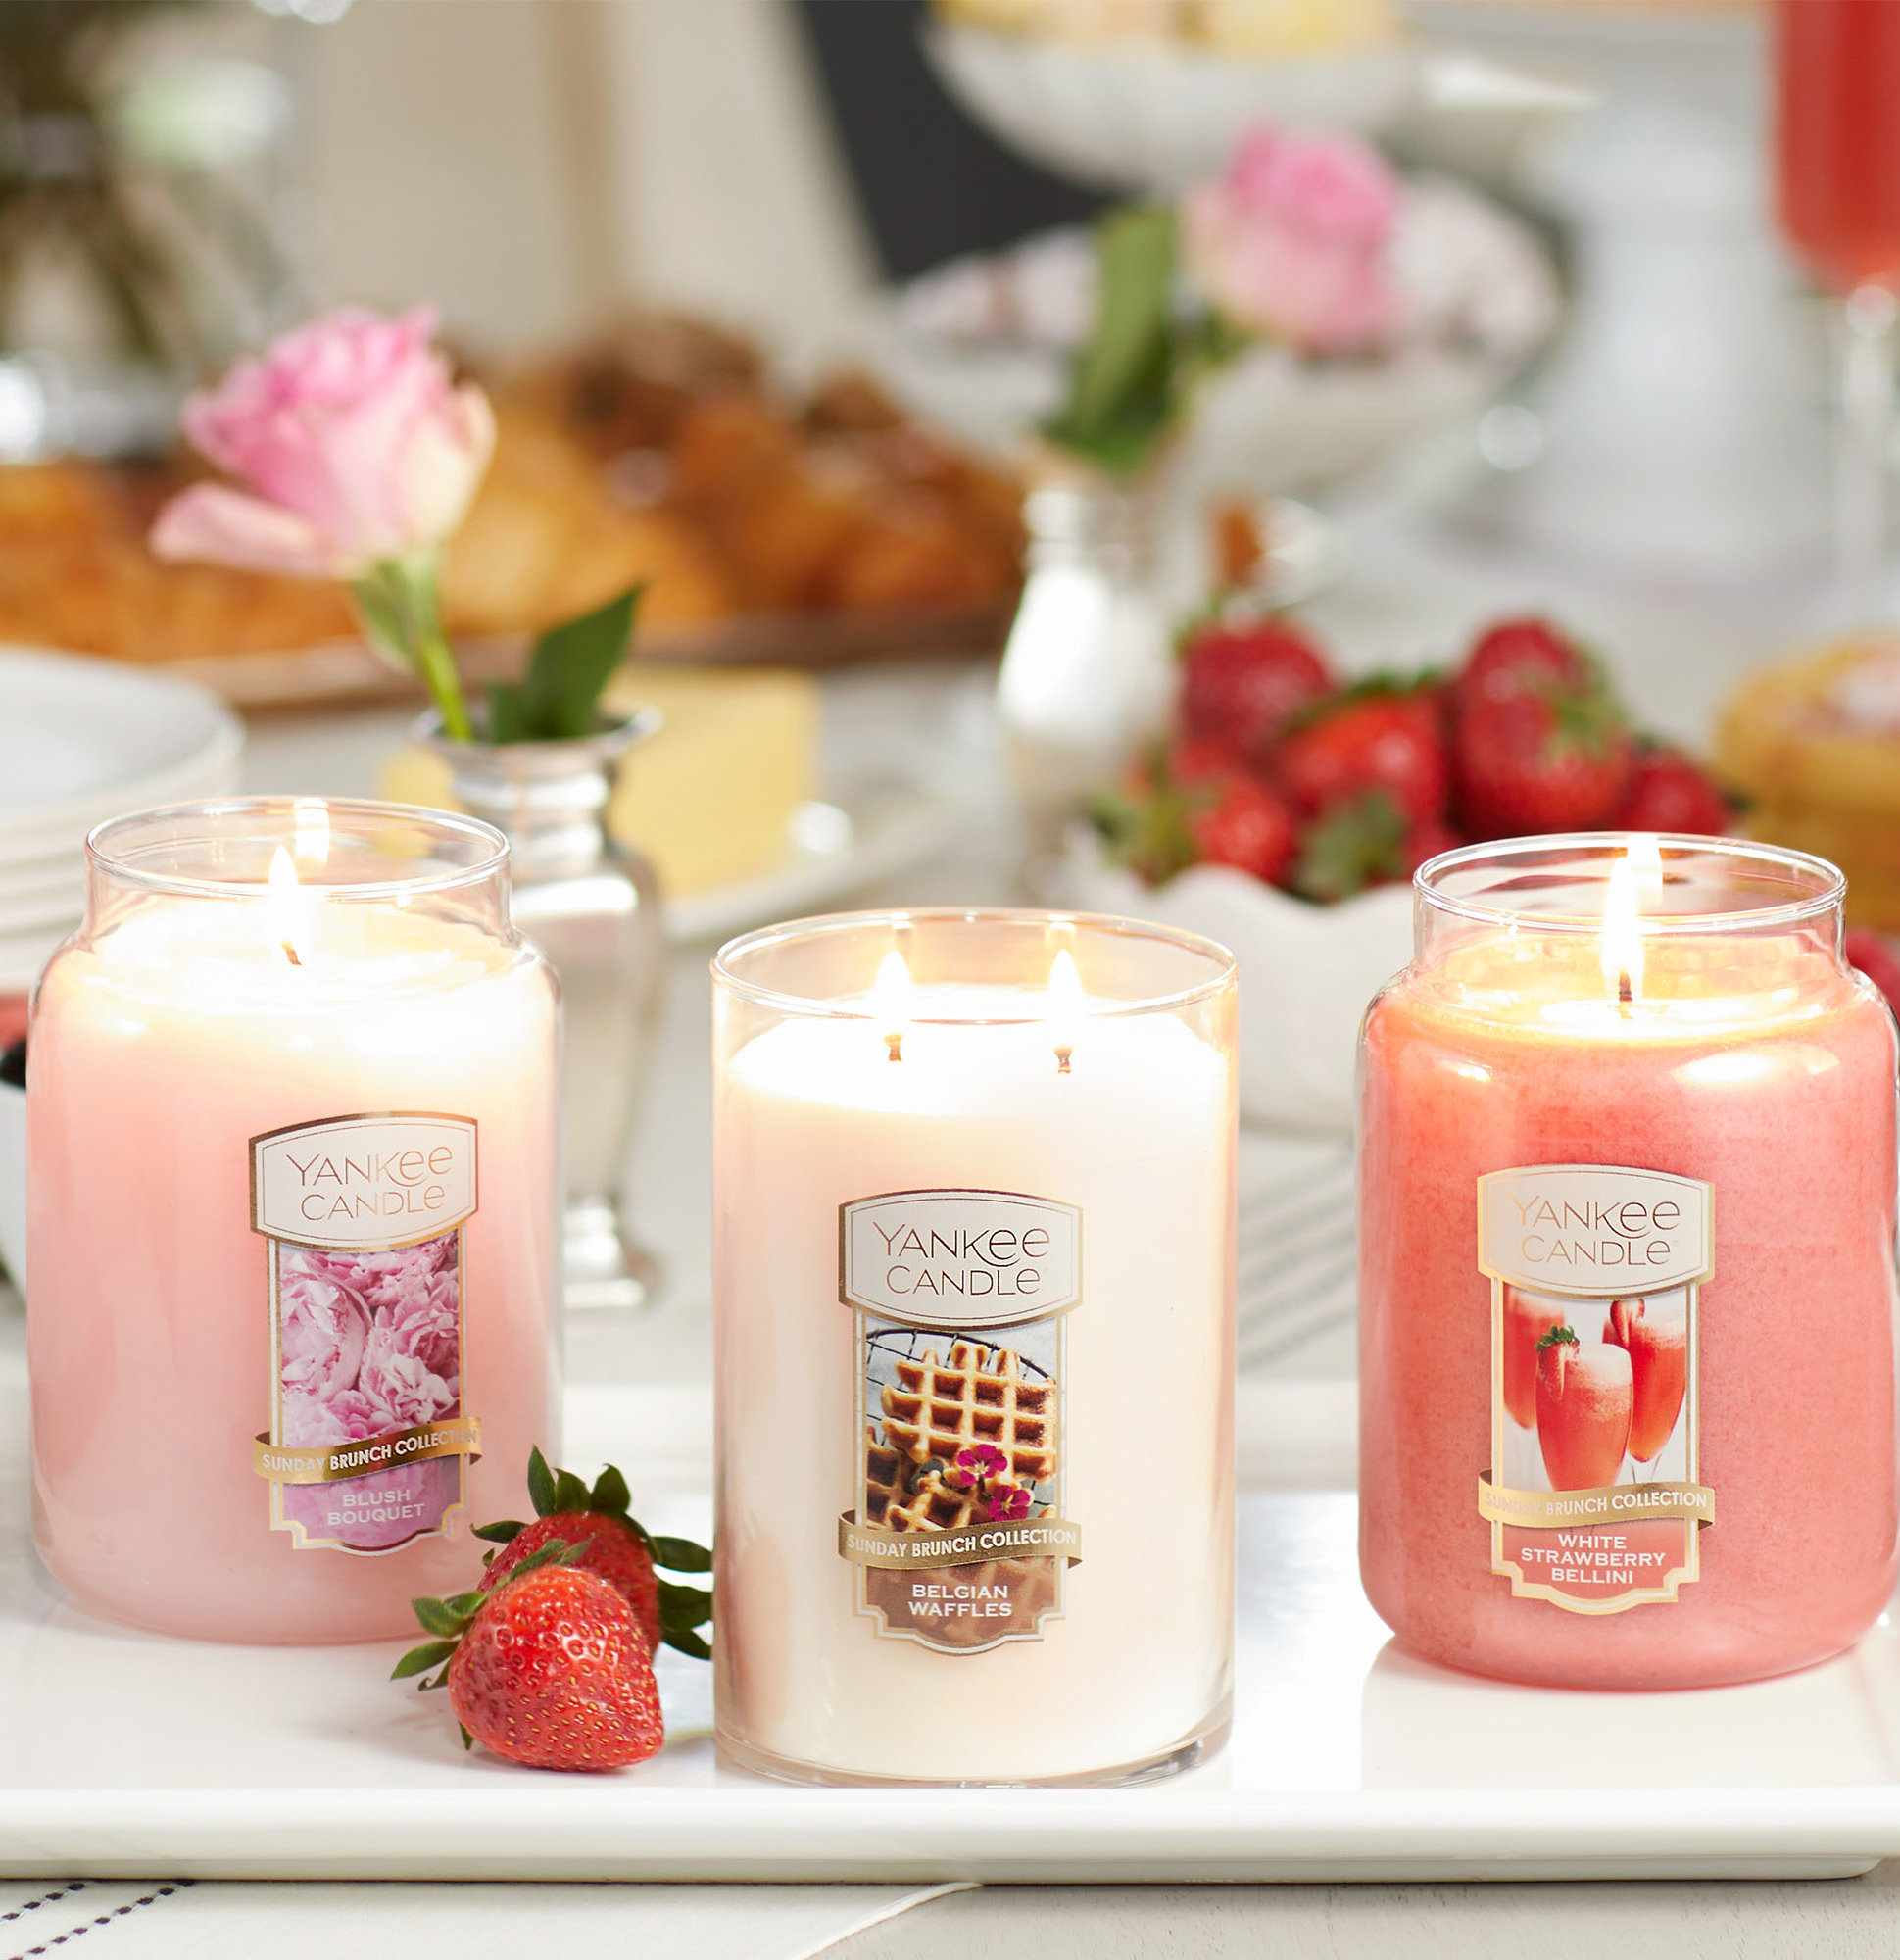 Yankee Candle Brunch Collection Candle in Blush Bouquet